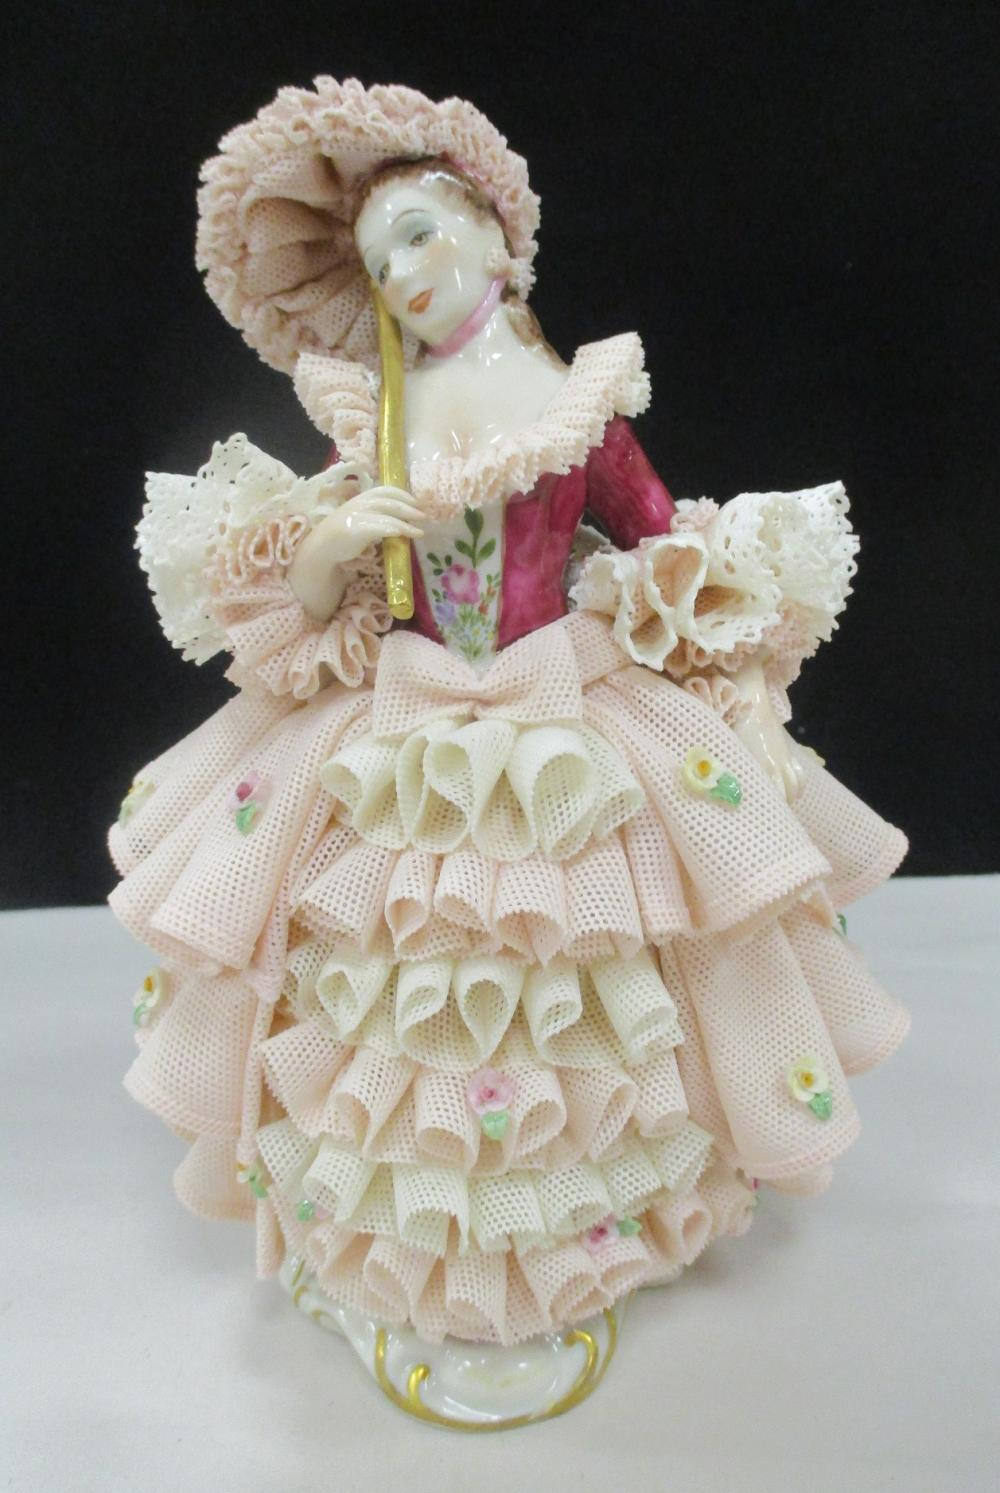 """MZ IRISH DRESDEN PORCELAIN LACE FIGURE """"THE PRIDE OF TIPPERAIY"""" NUMBERED 34324. 7.25"""" TALL"""